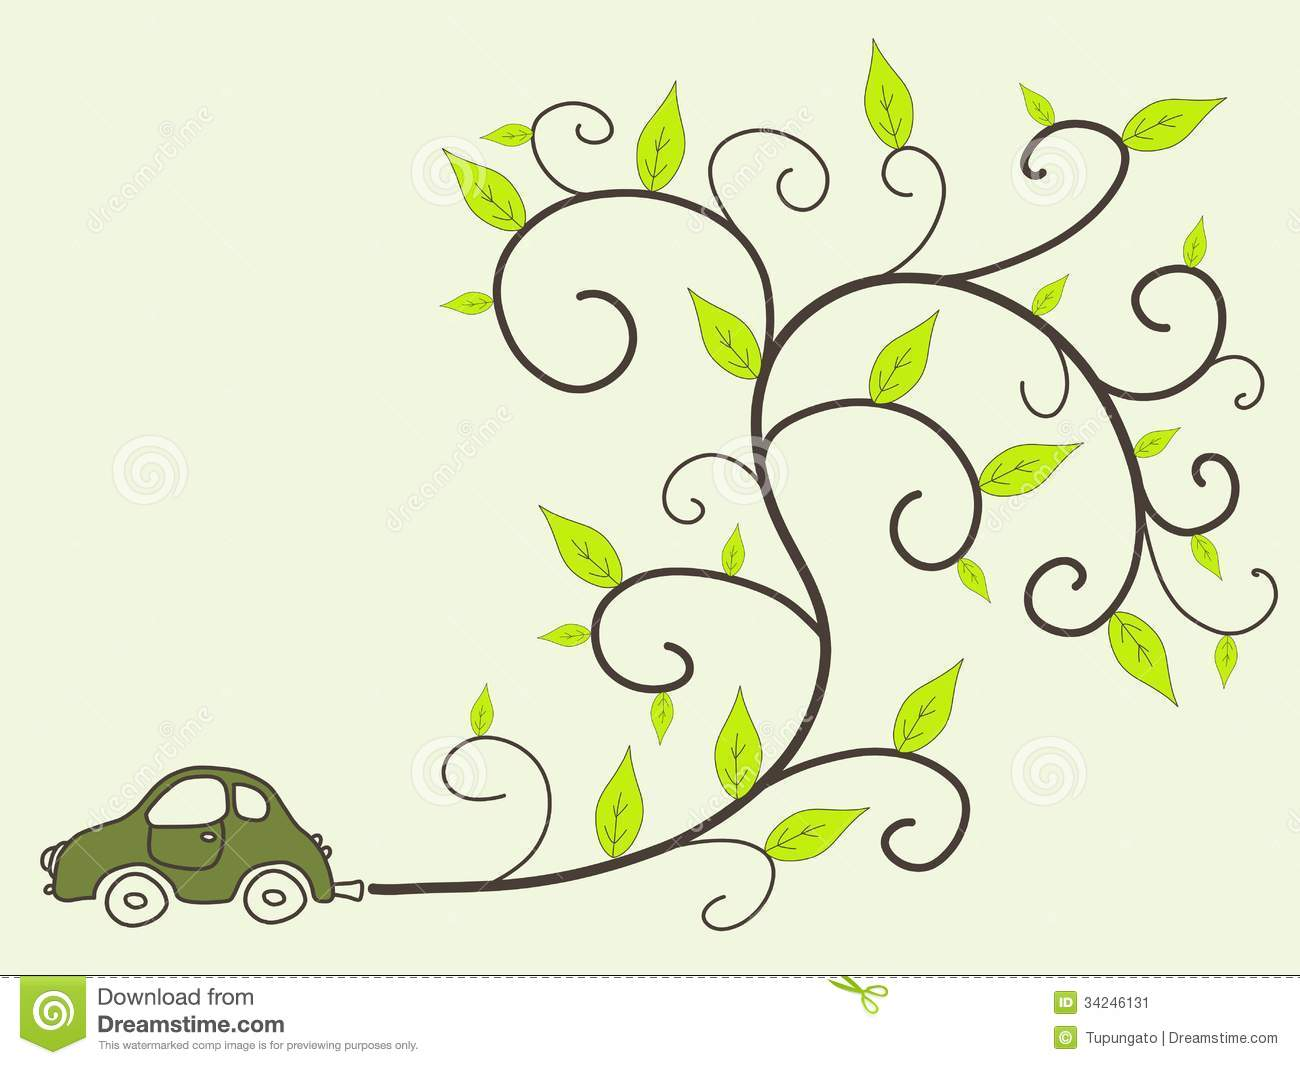 Environment Friendly Car Clipart.